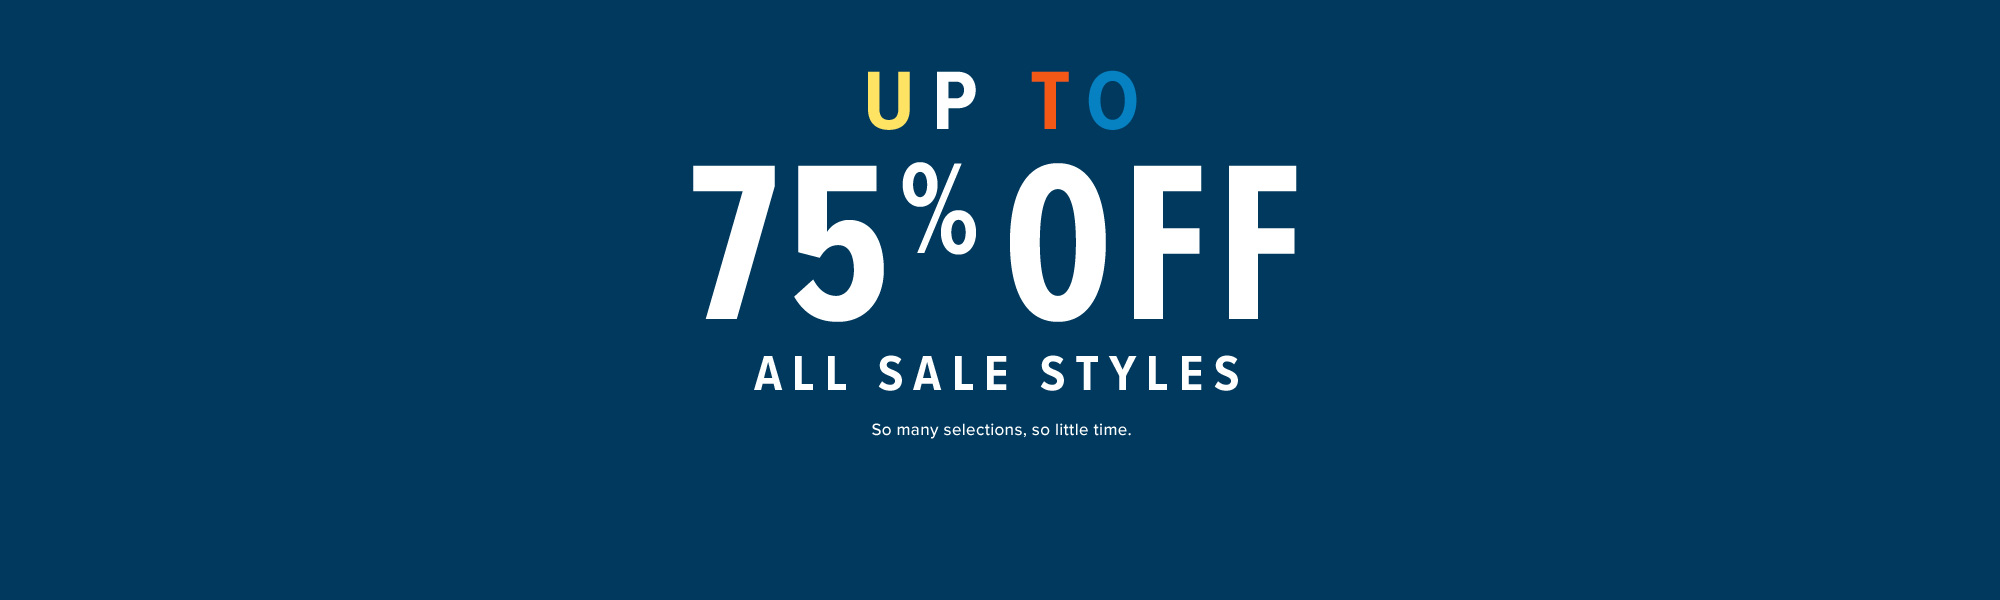 Up to 75 % off Sale